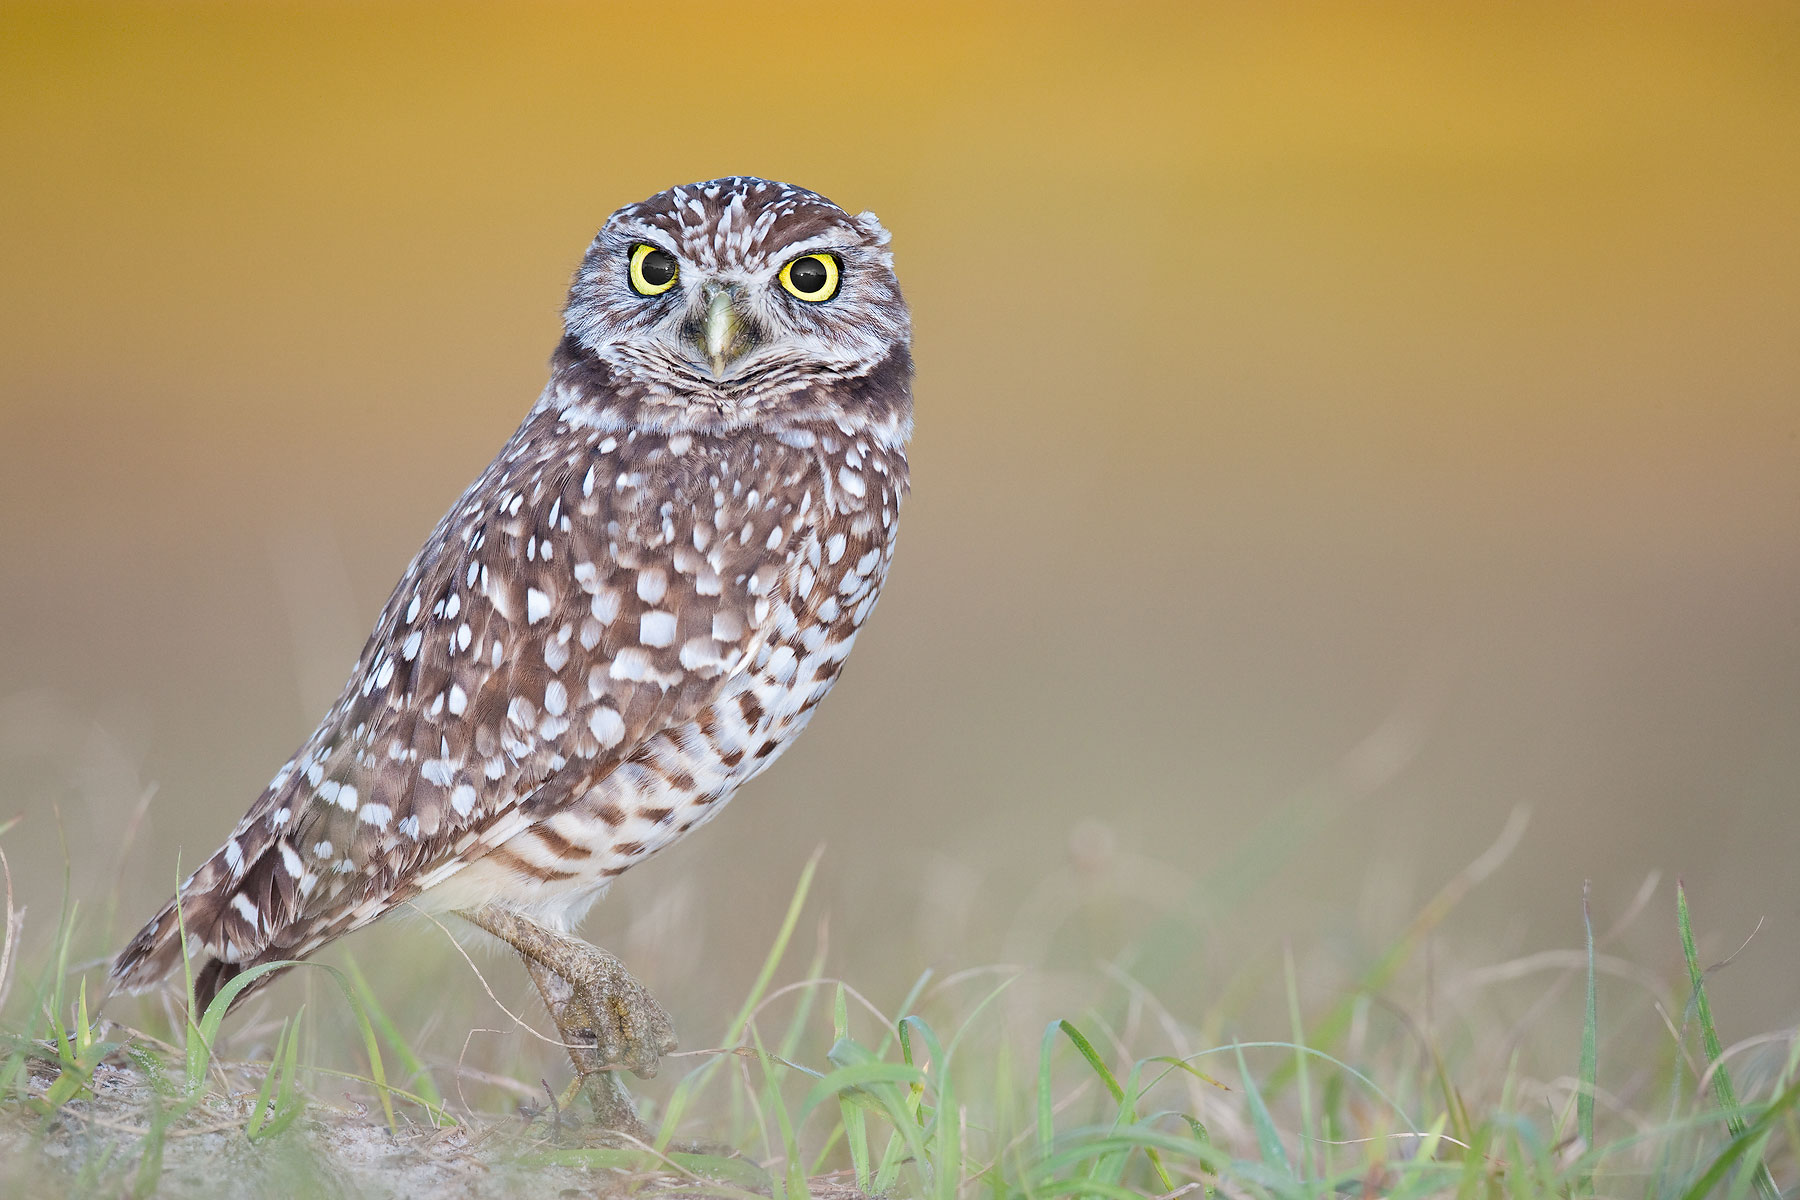 Burrowing-Owl-against-yellow-bkgd-02100405-Cape-Coral,-FL.jpg